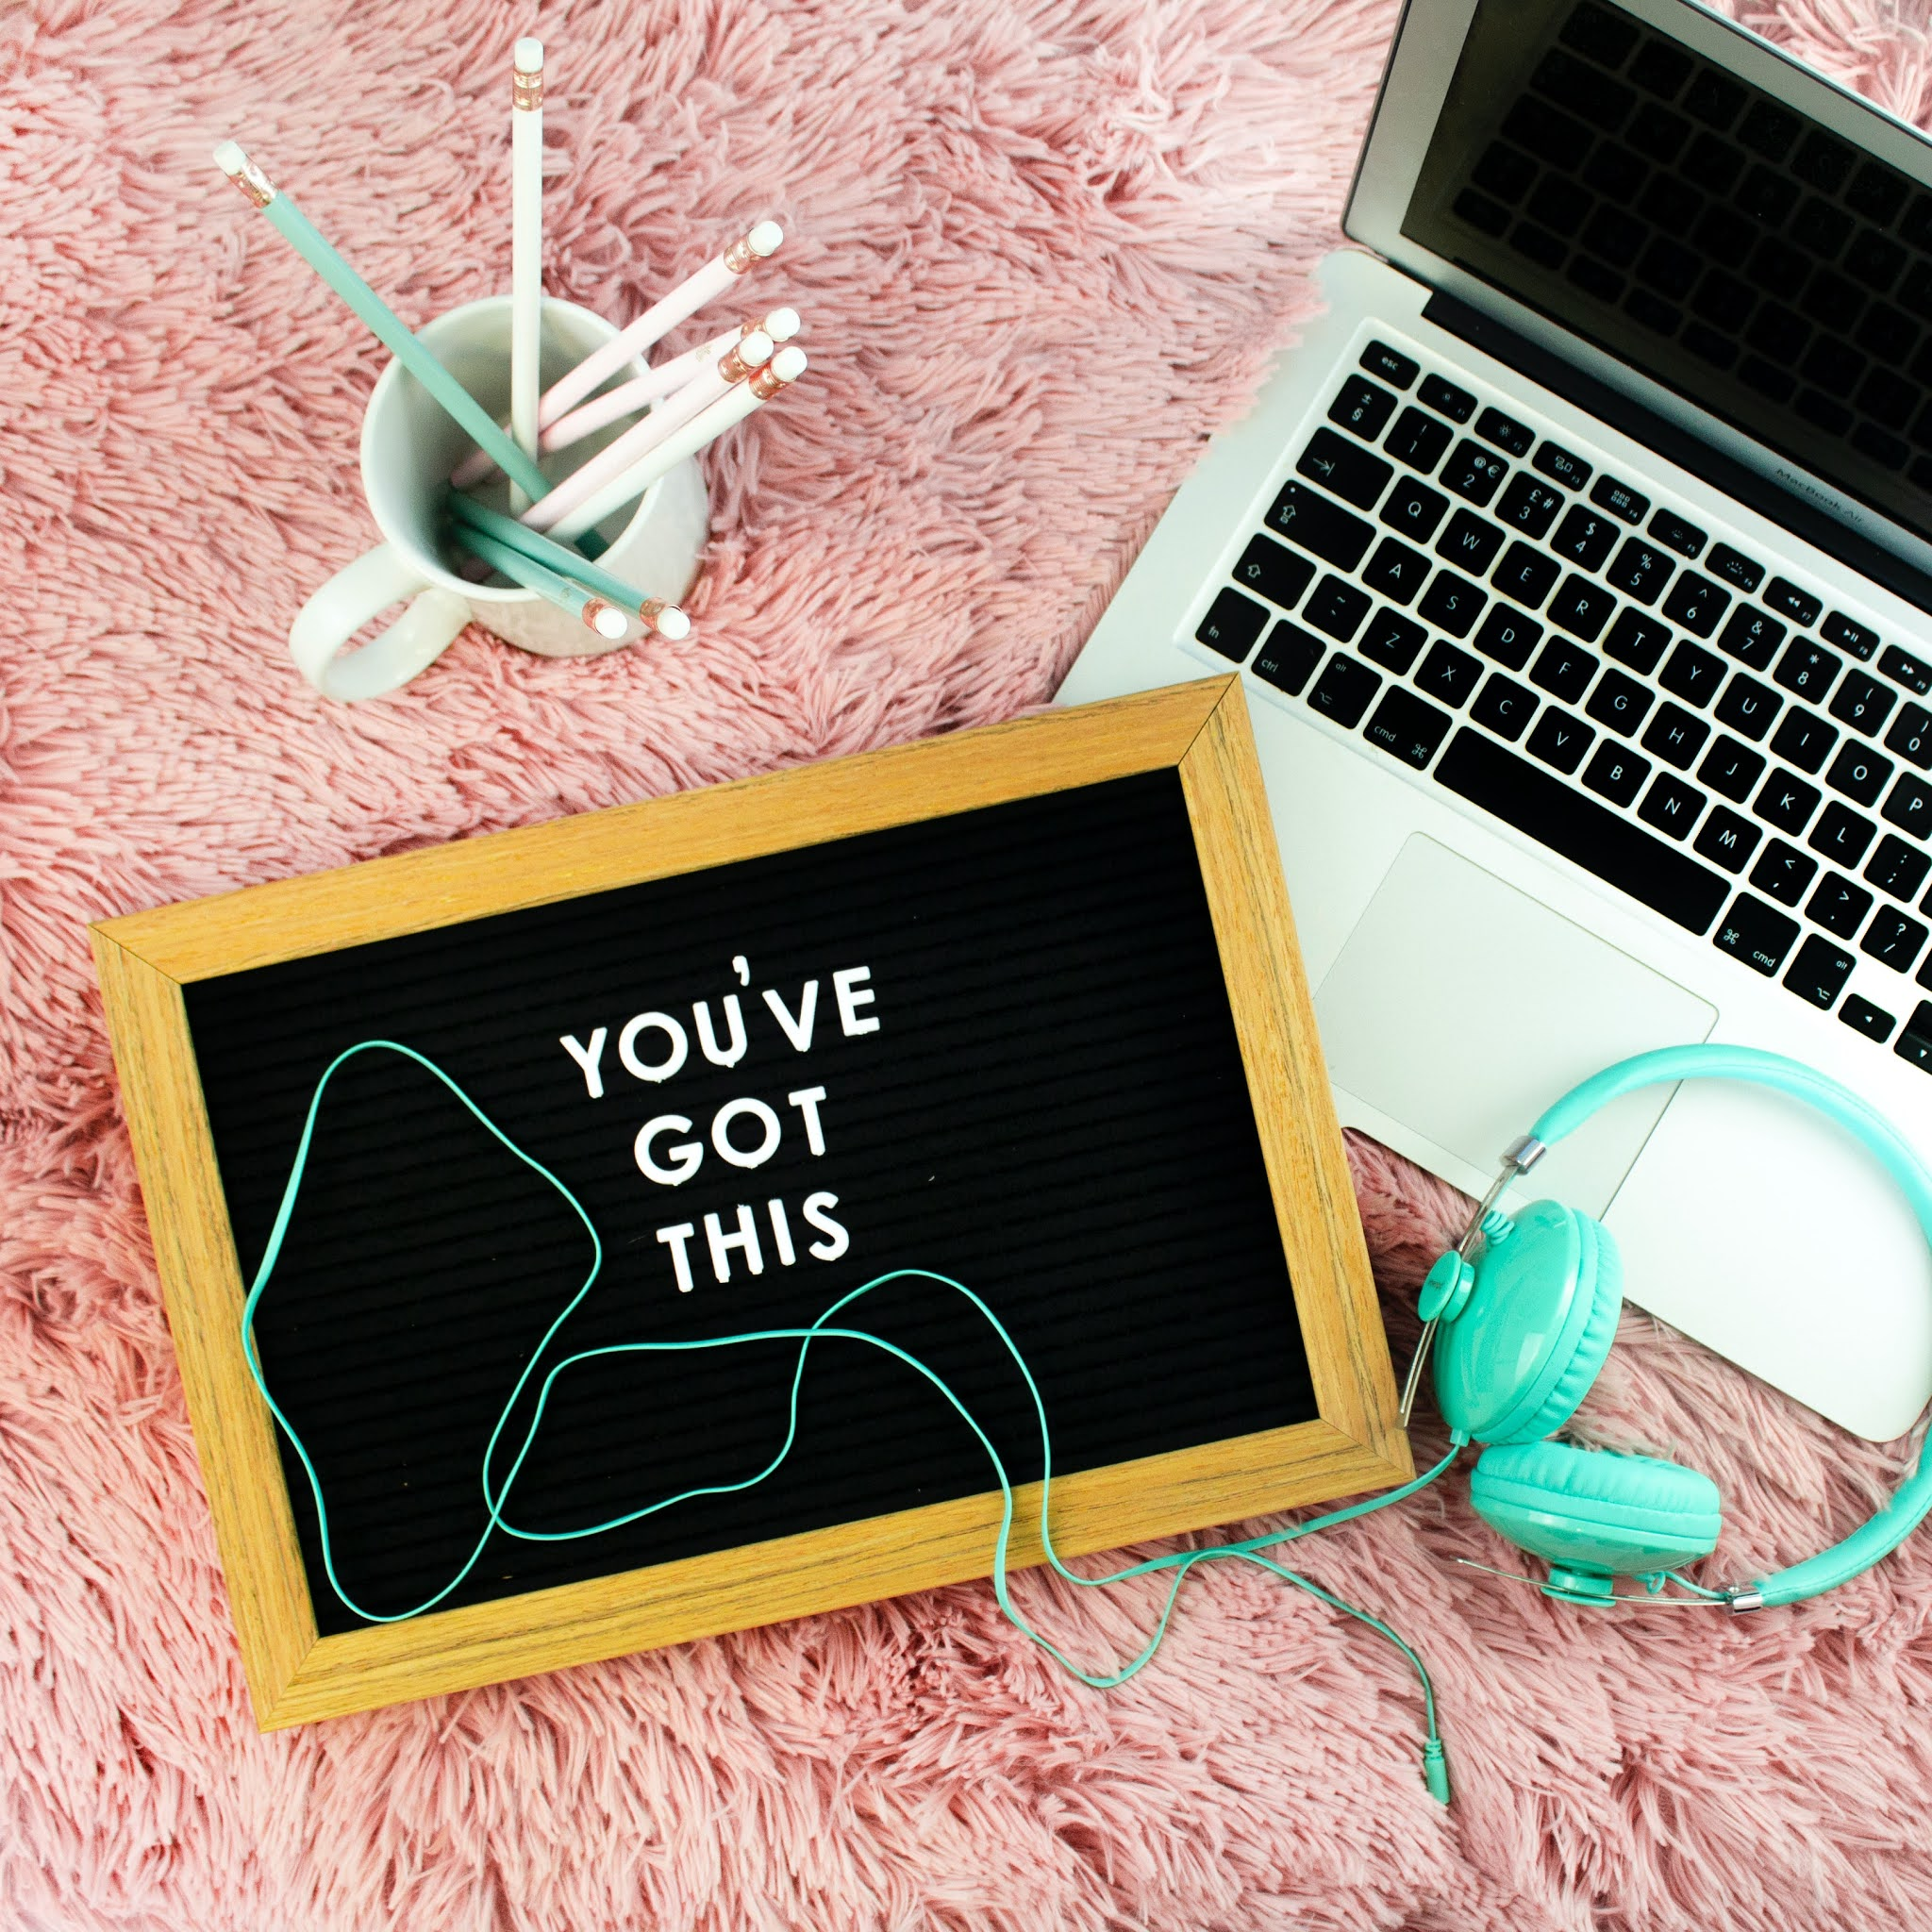 you've got this sign next to laptop and blue wire headphones on pink rug